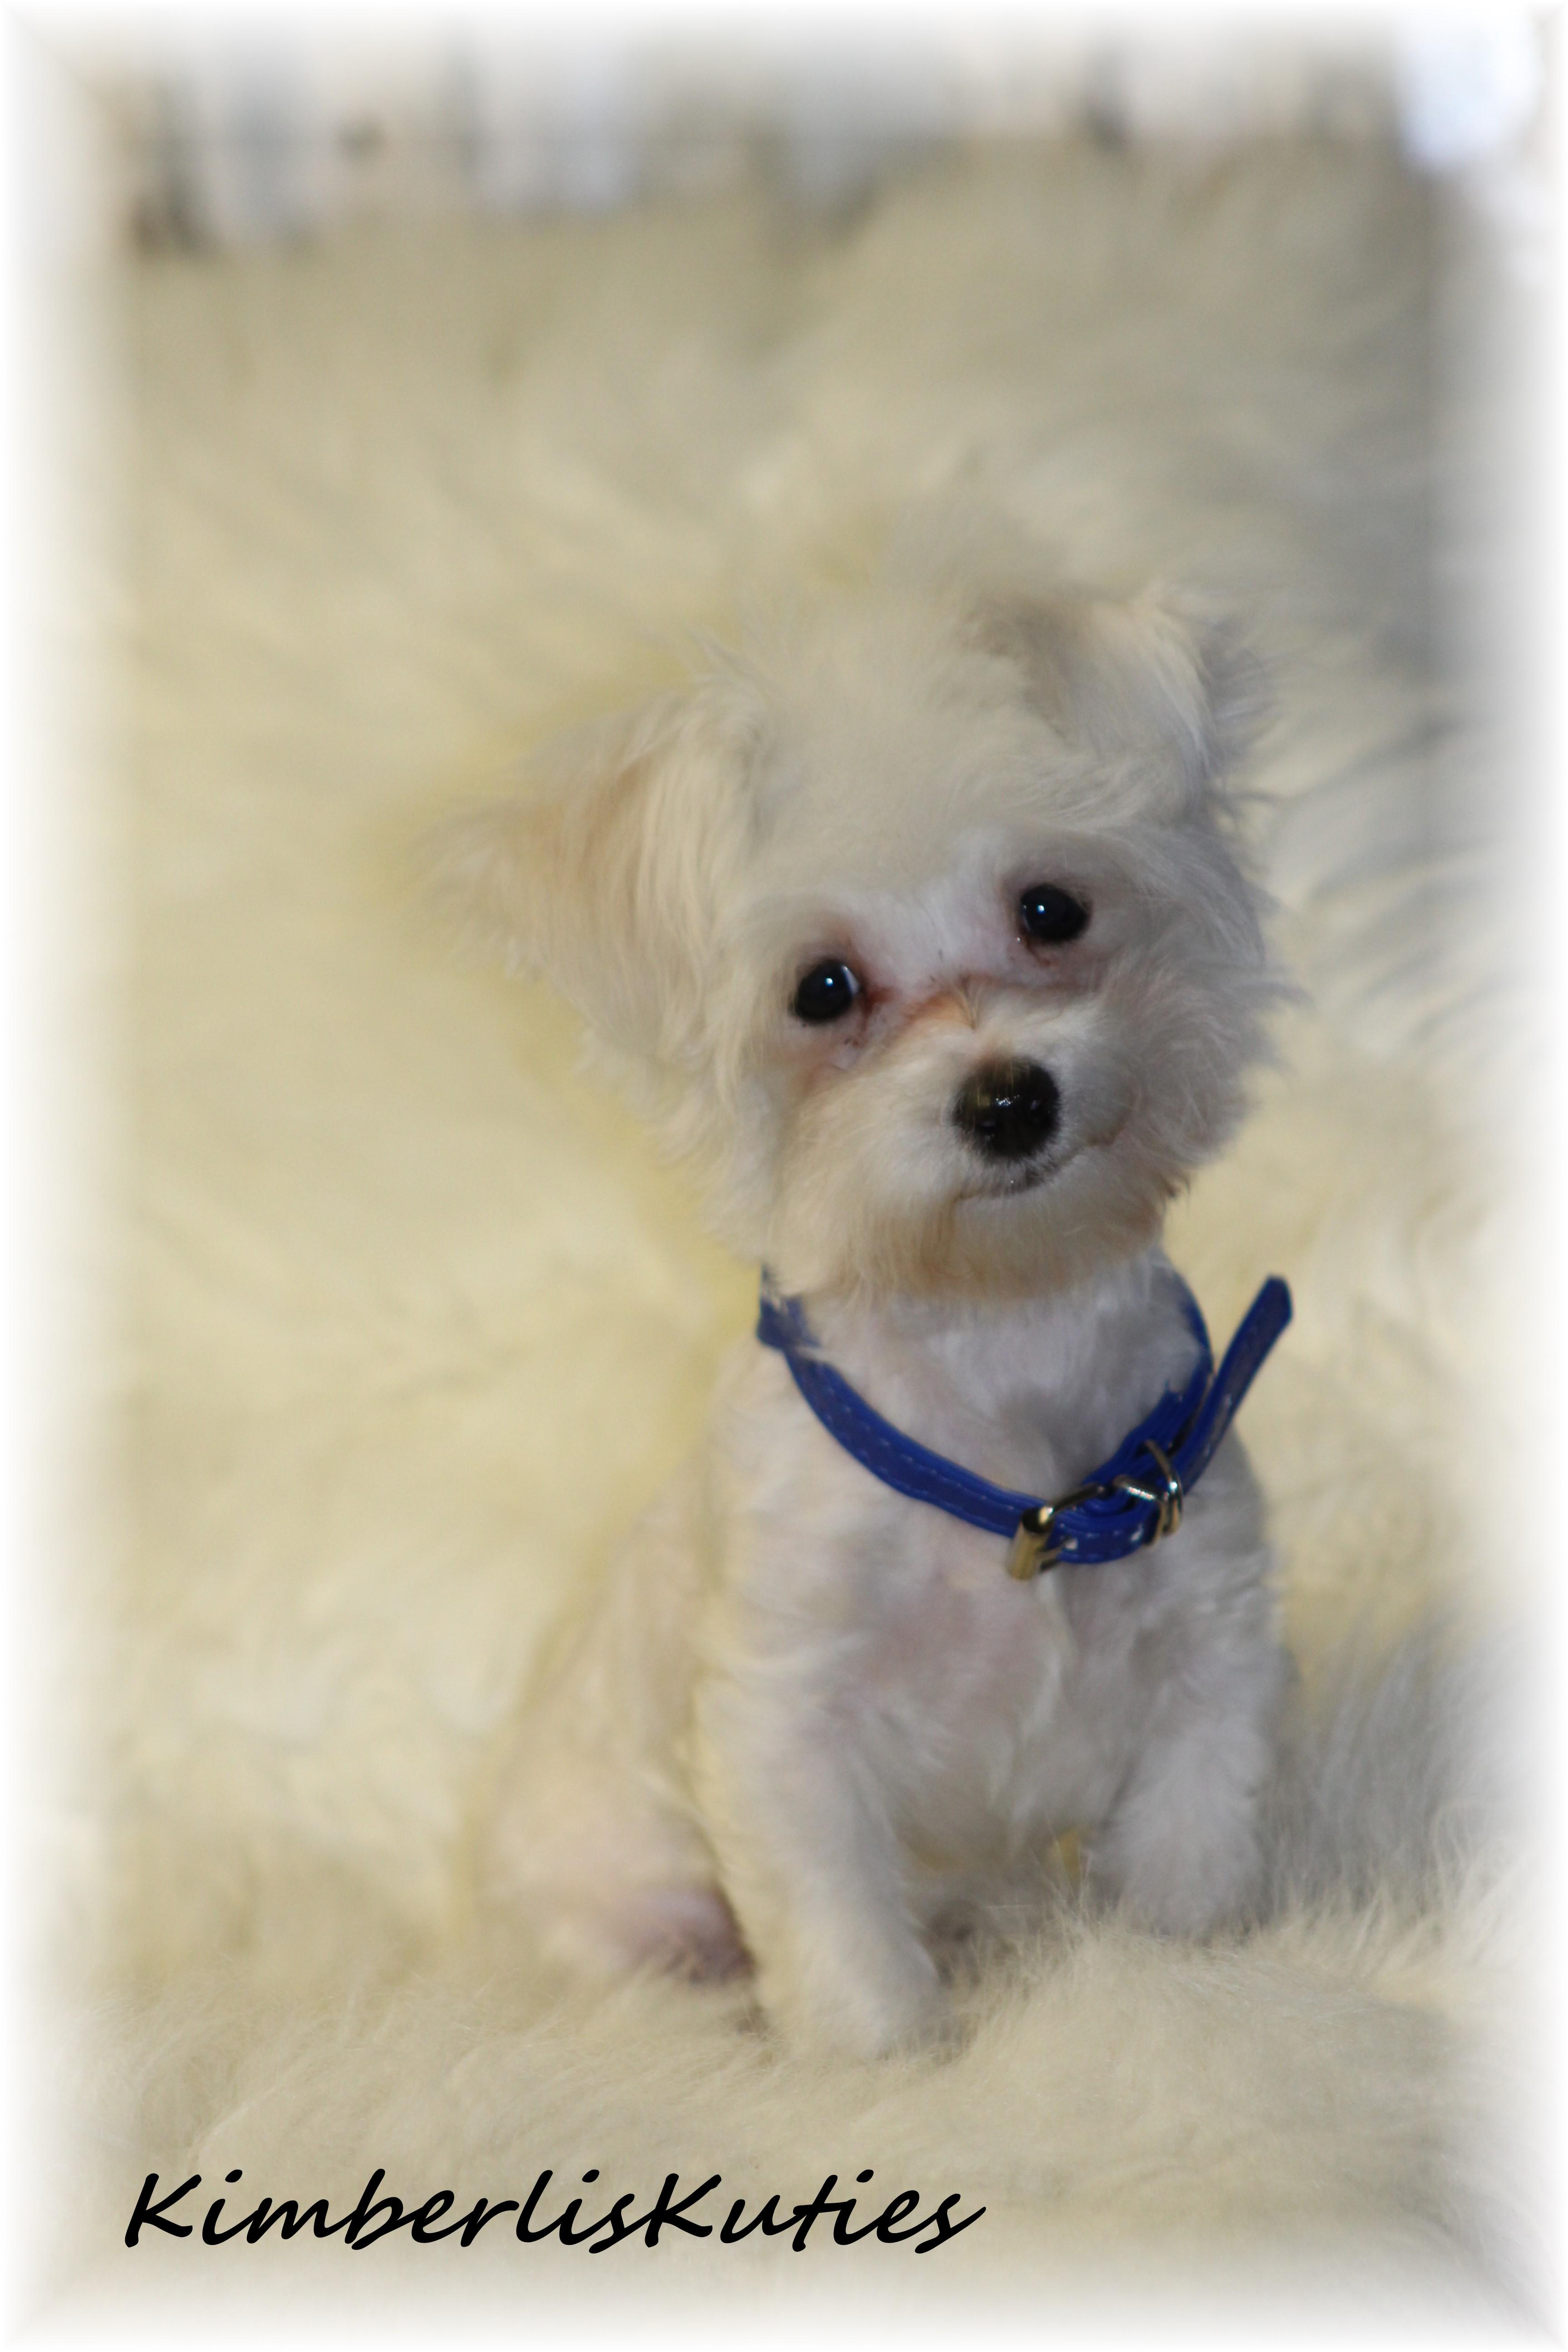 Yorkie biewer chinese imperial shih tzu scottish terrier click on image to enlarge nvjuhfo Image collections